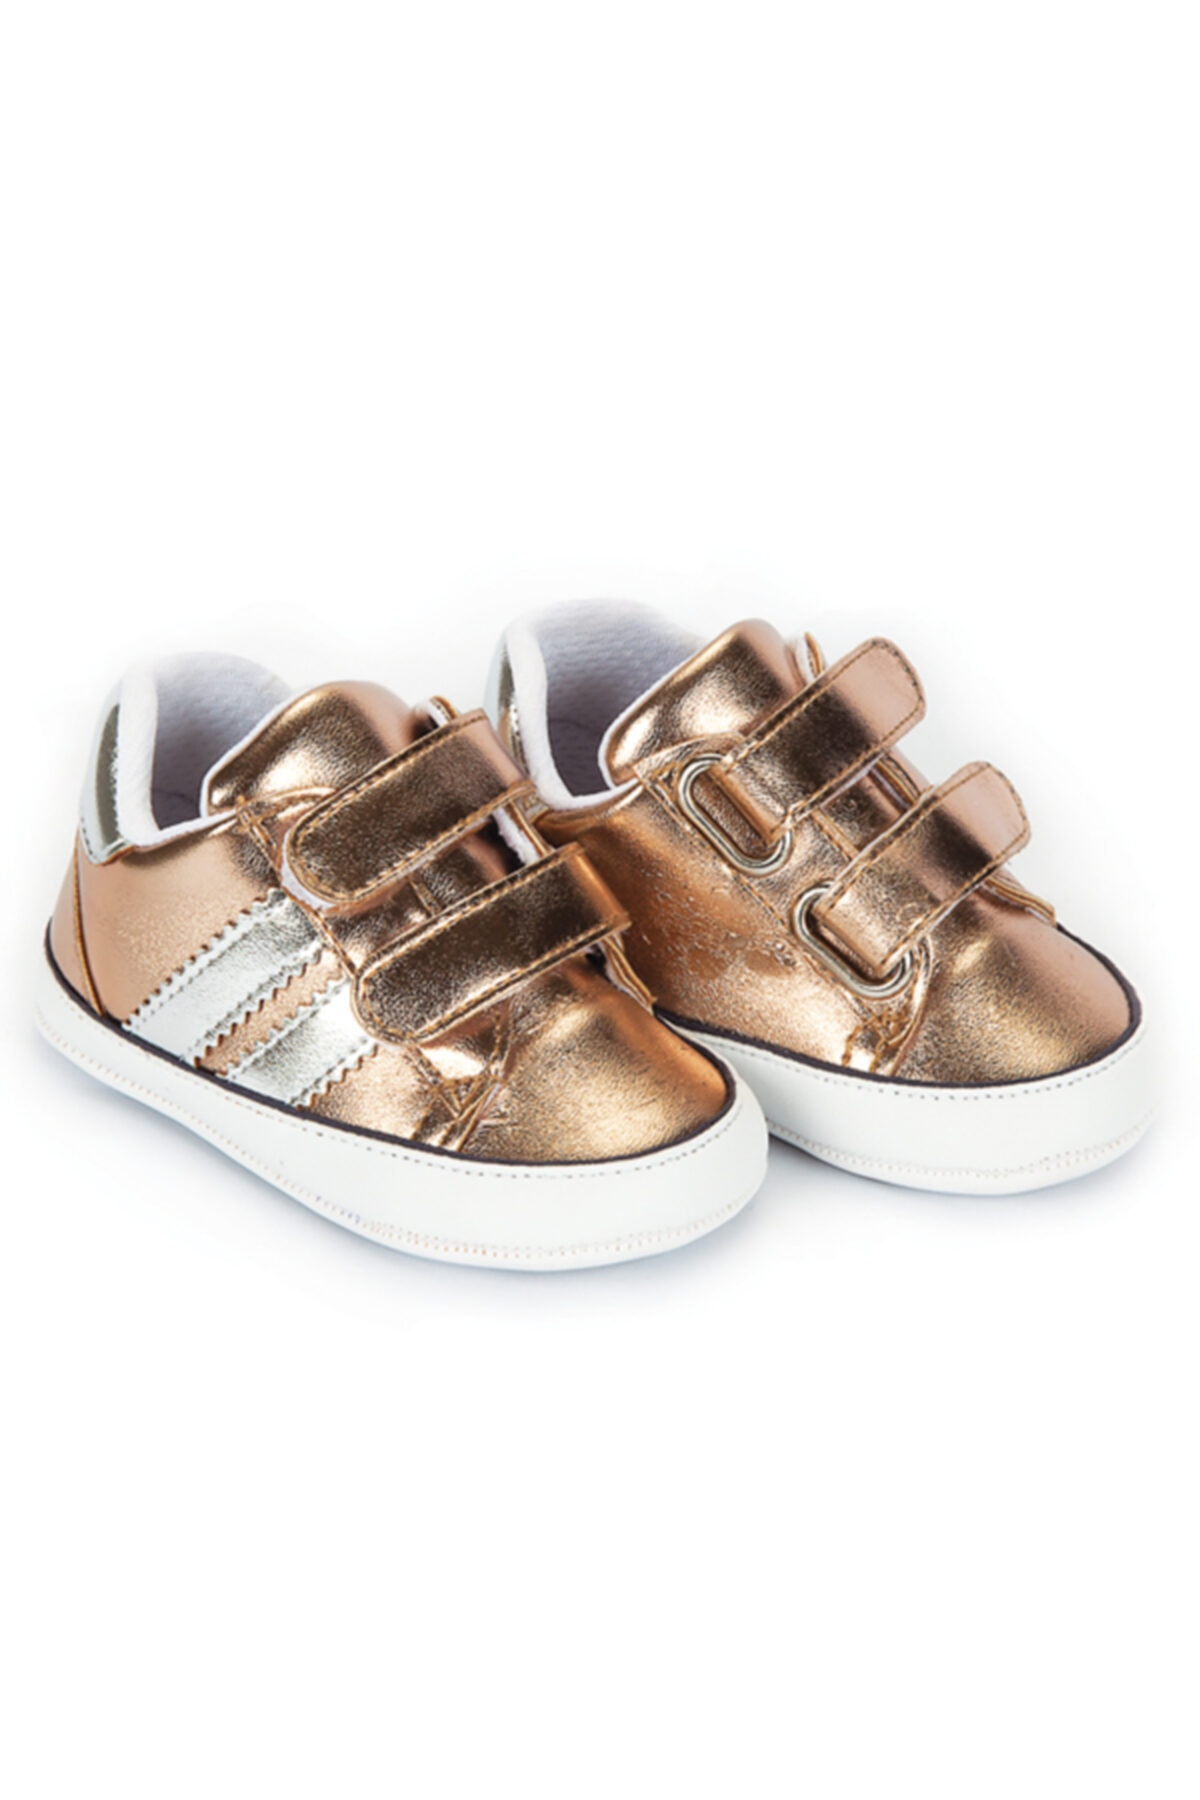 Flaneur Baby Girl Gold Casual Shoes 2021 Premium Quality